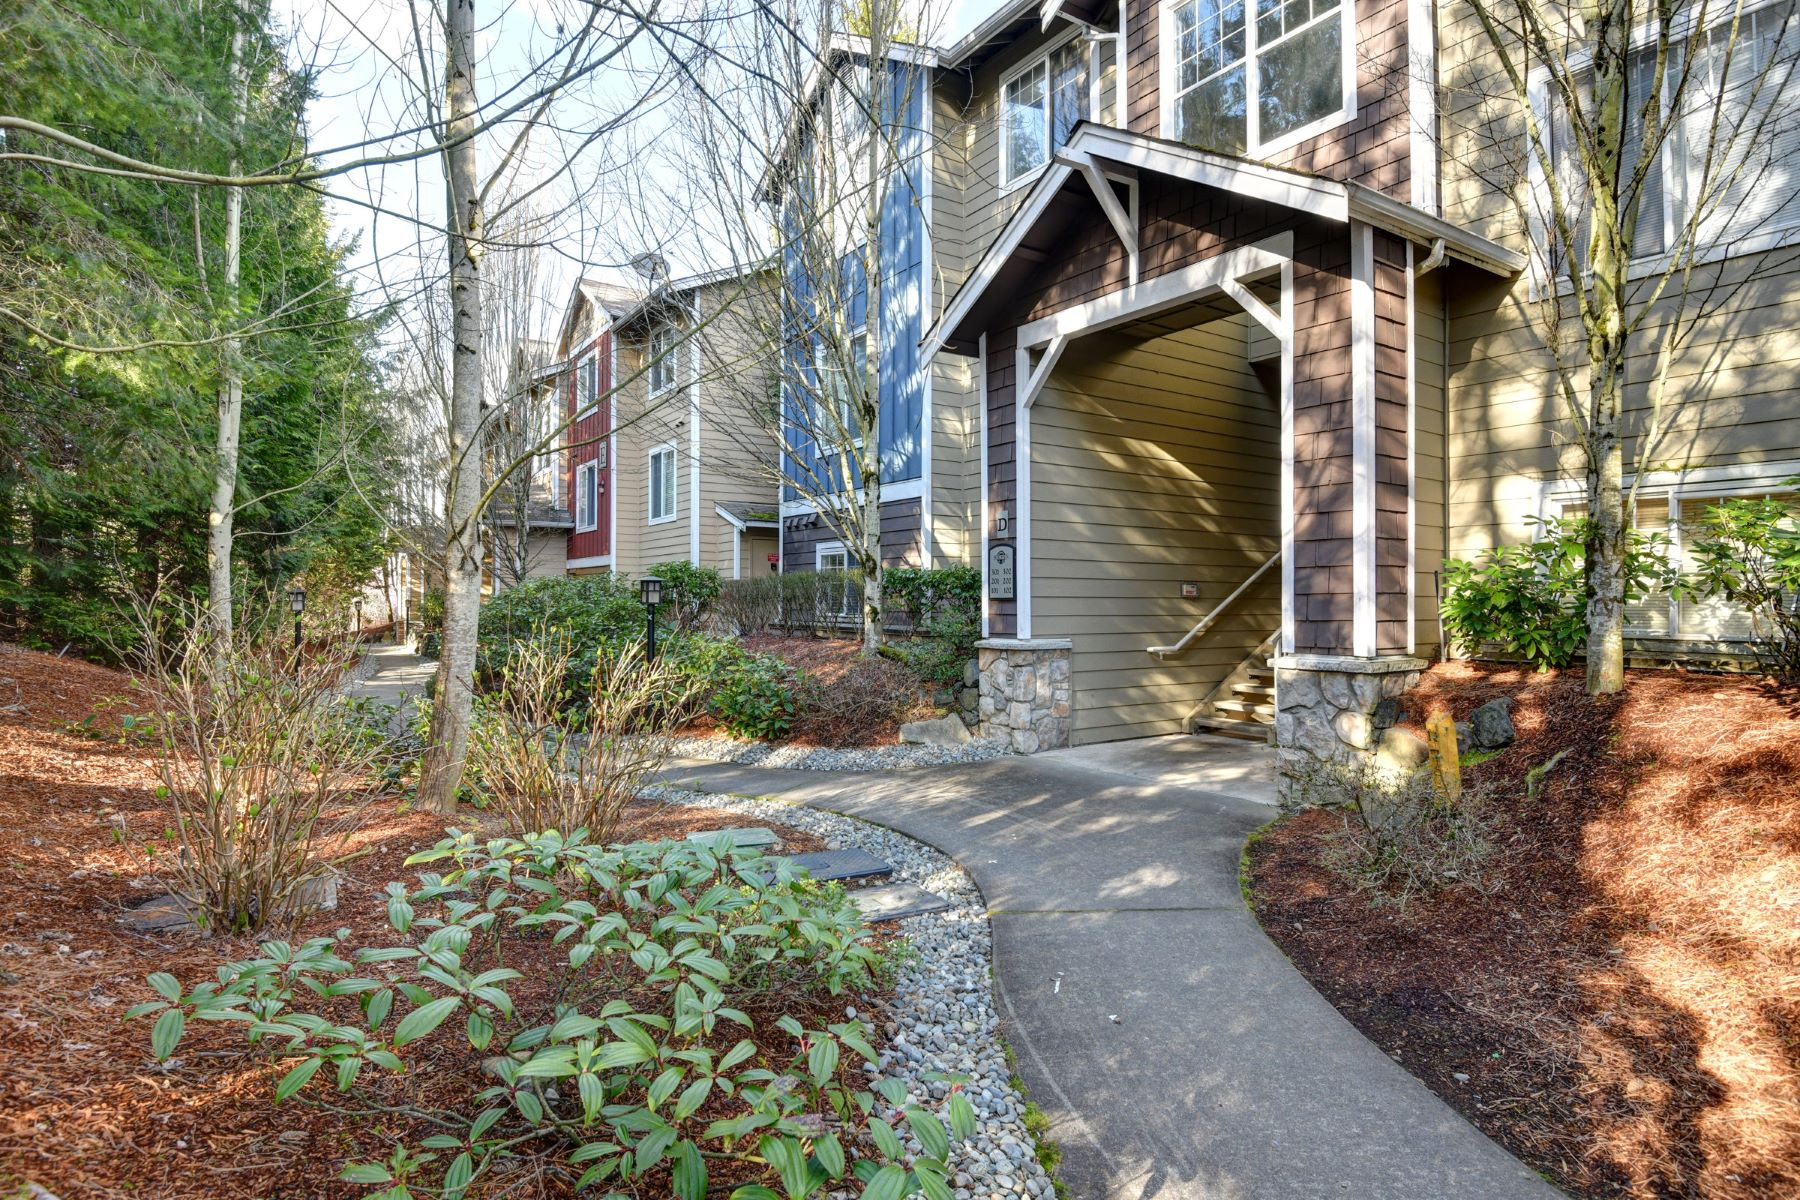 Condominiums for Sale at 710 240th Wy SE Unit #D101, Sammamish, WA 98074 710 240th Wy SE Unit #D101 Sammamish, Washington 98074 United States